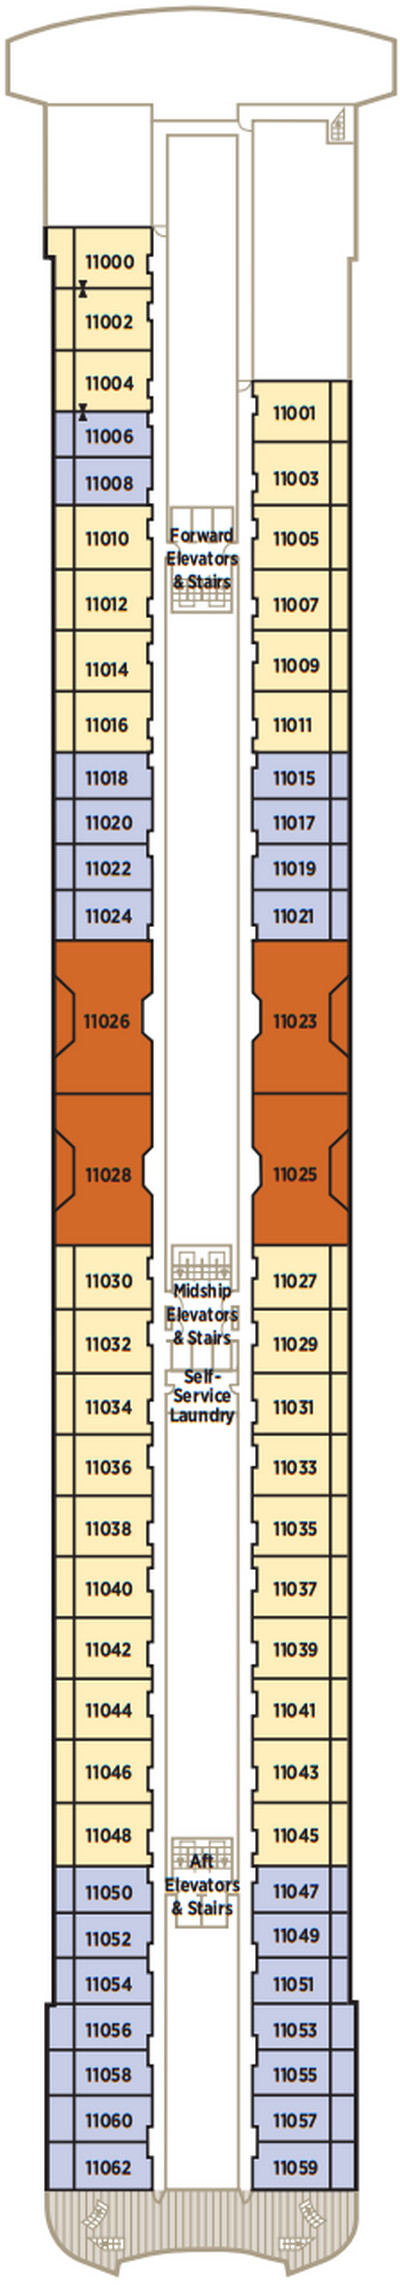 Crystal Serenity Deck 11 Penthouse layout